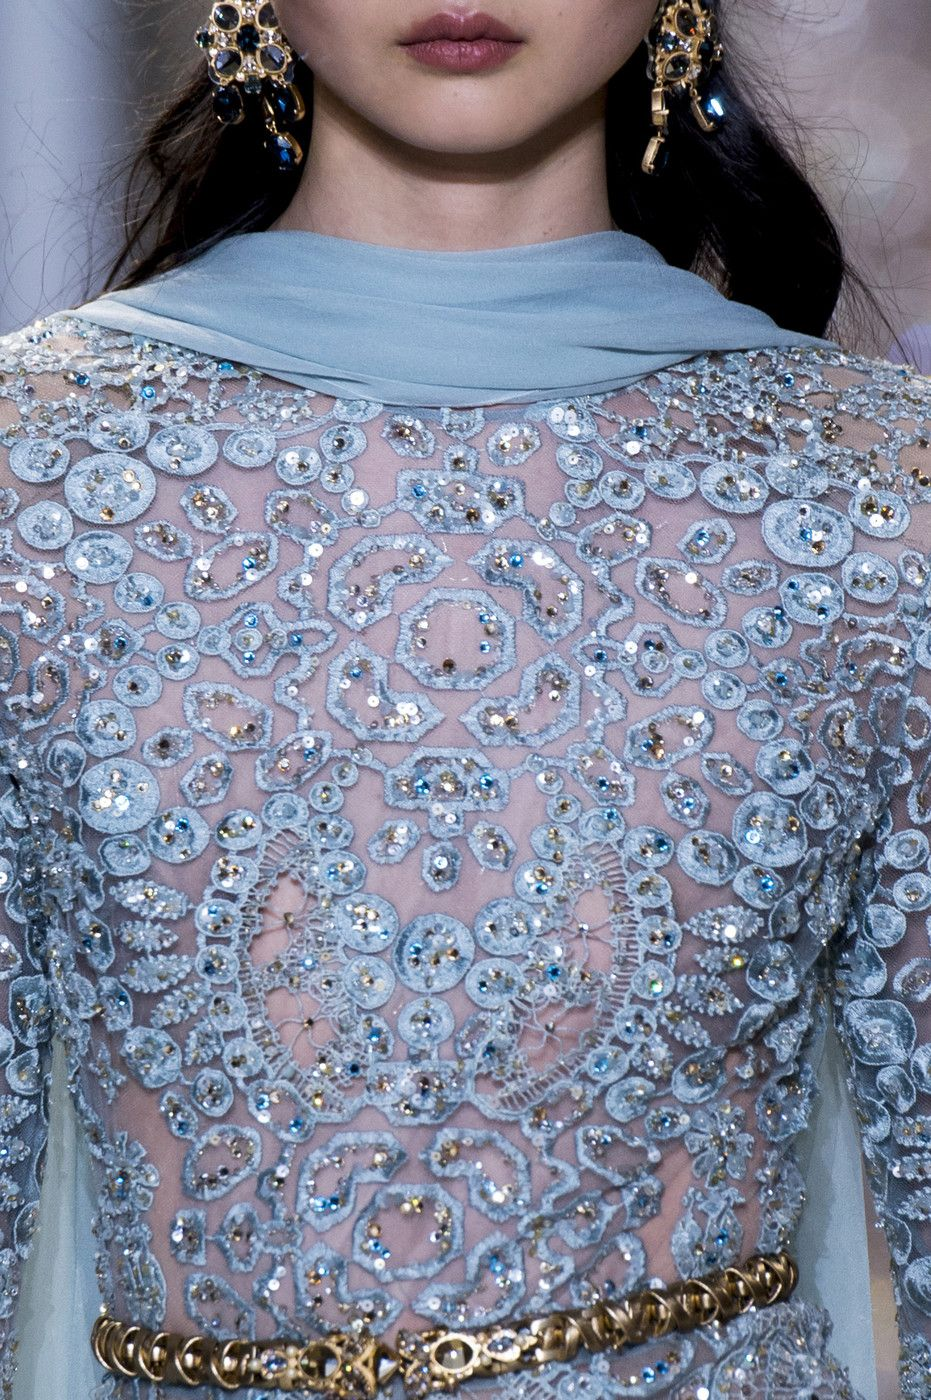 Elie Saab at Couture Spring 2017 - #Details Runway Photos